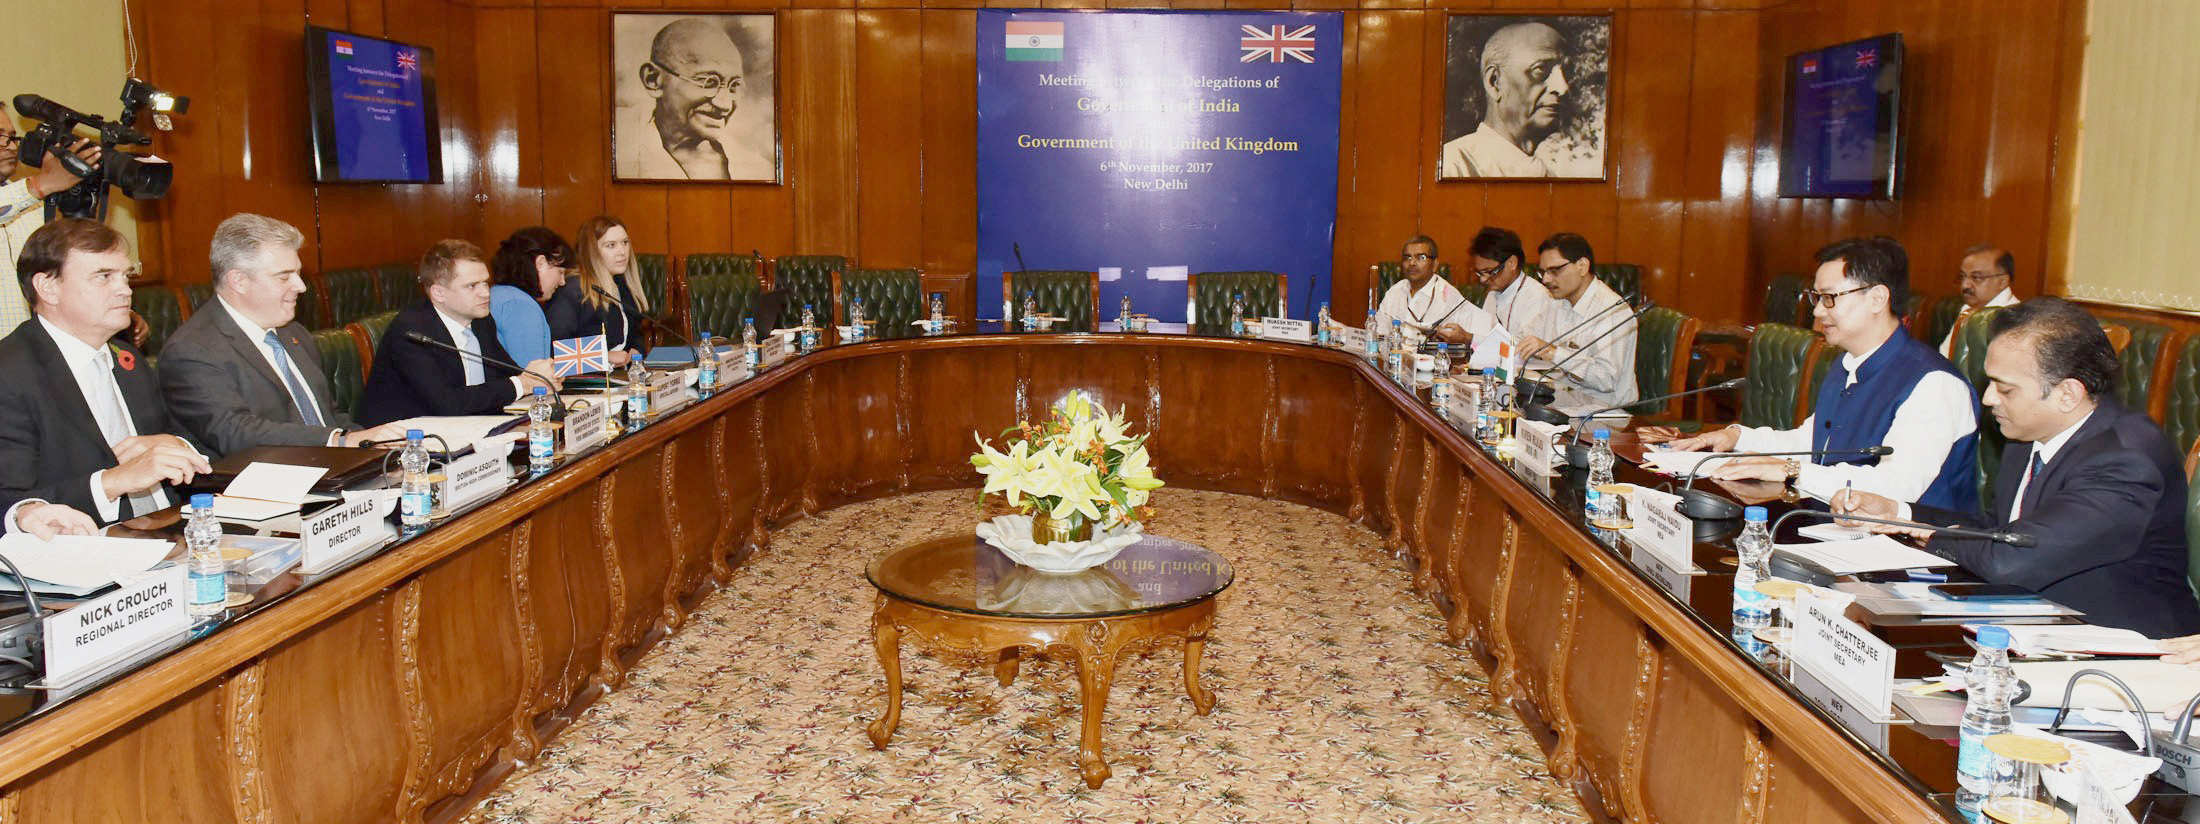 A delegation from the United Kingdom led by the Minister of State for Immigration Brandon Lewis holding talks with the Indian delegation led by the Minister of State for Home Affairs, Kiren Rijiju, in New Delhi on November 06, 2017. (Photo: Press Information Bureau)